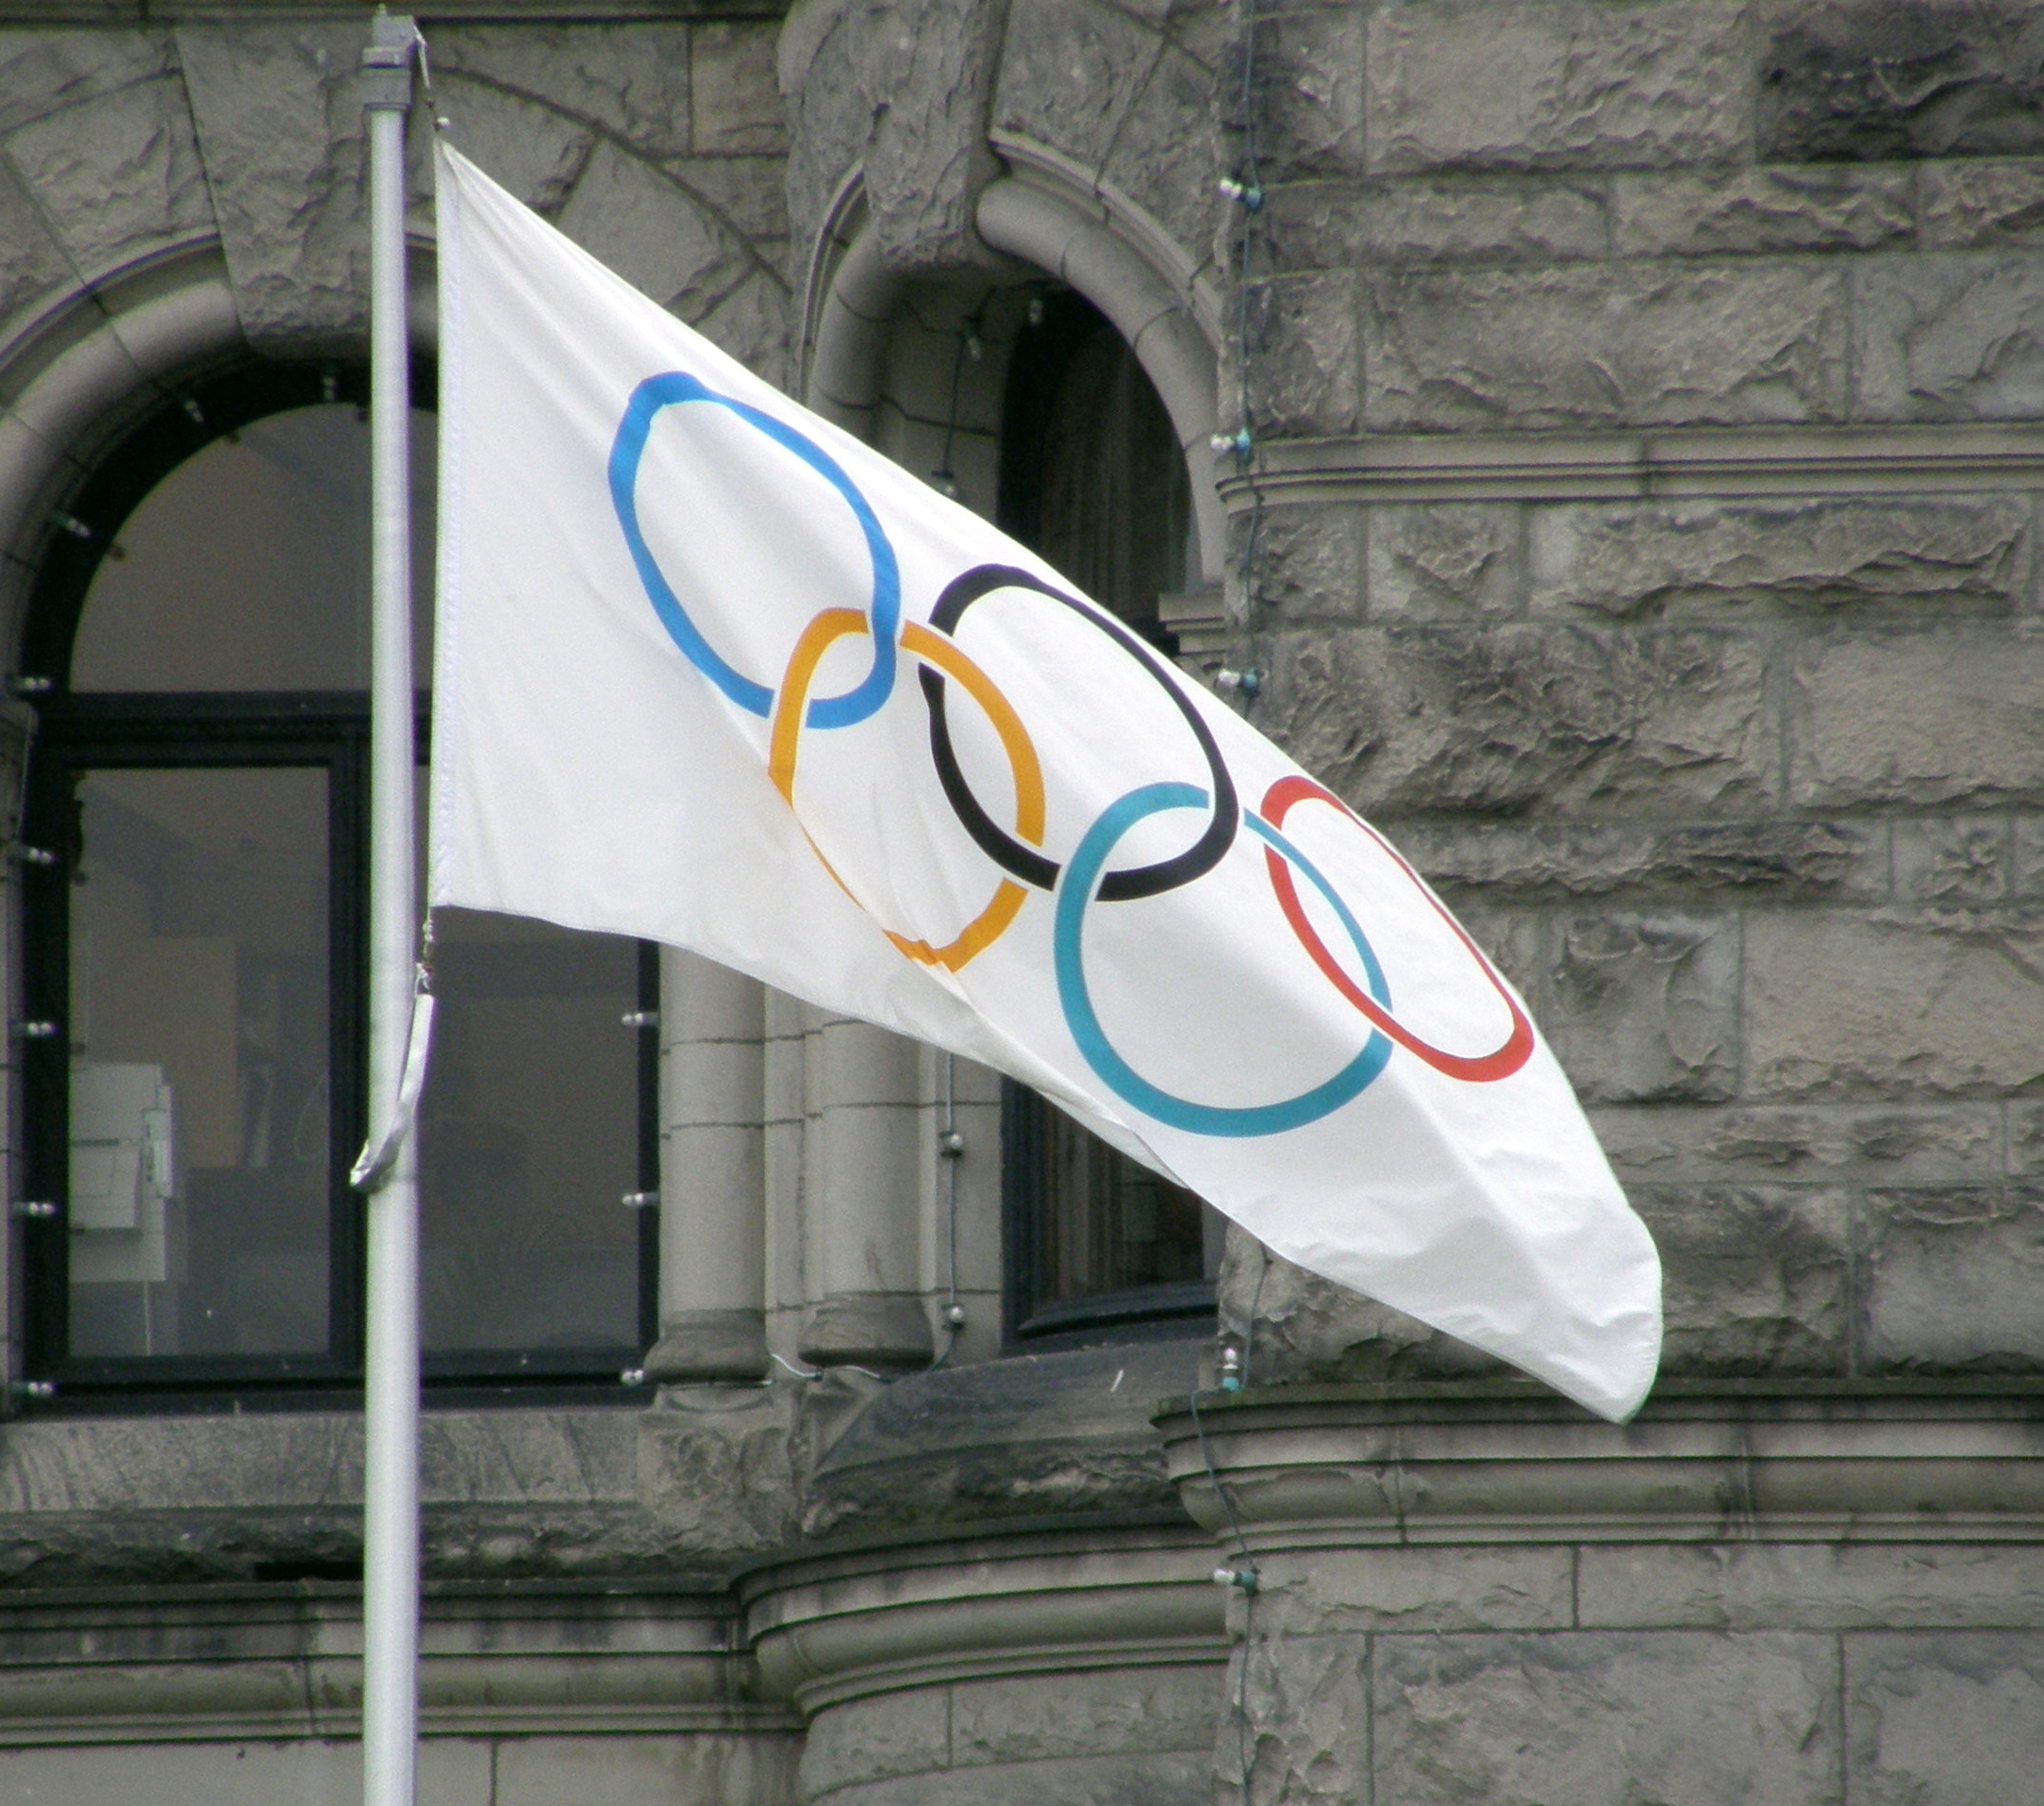 2024 Olympic Games